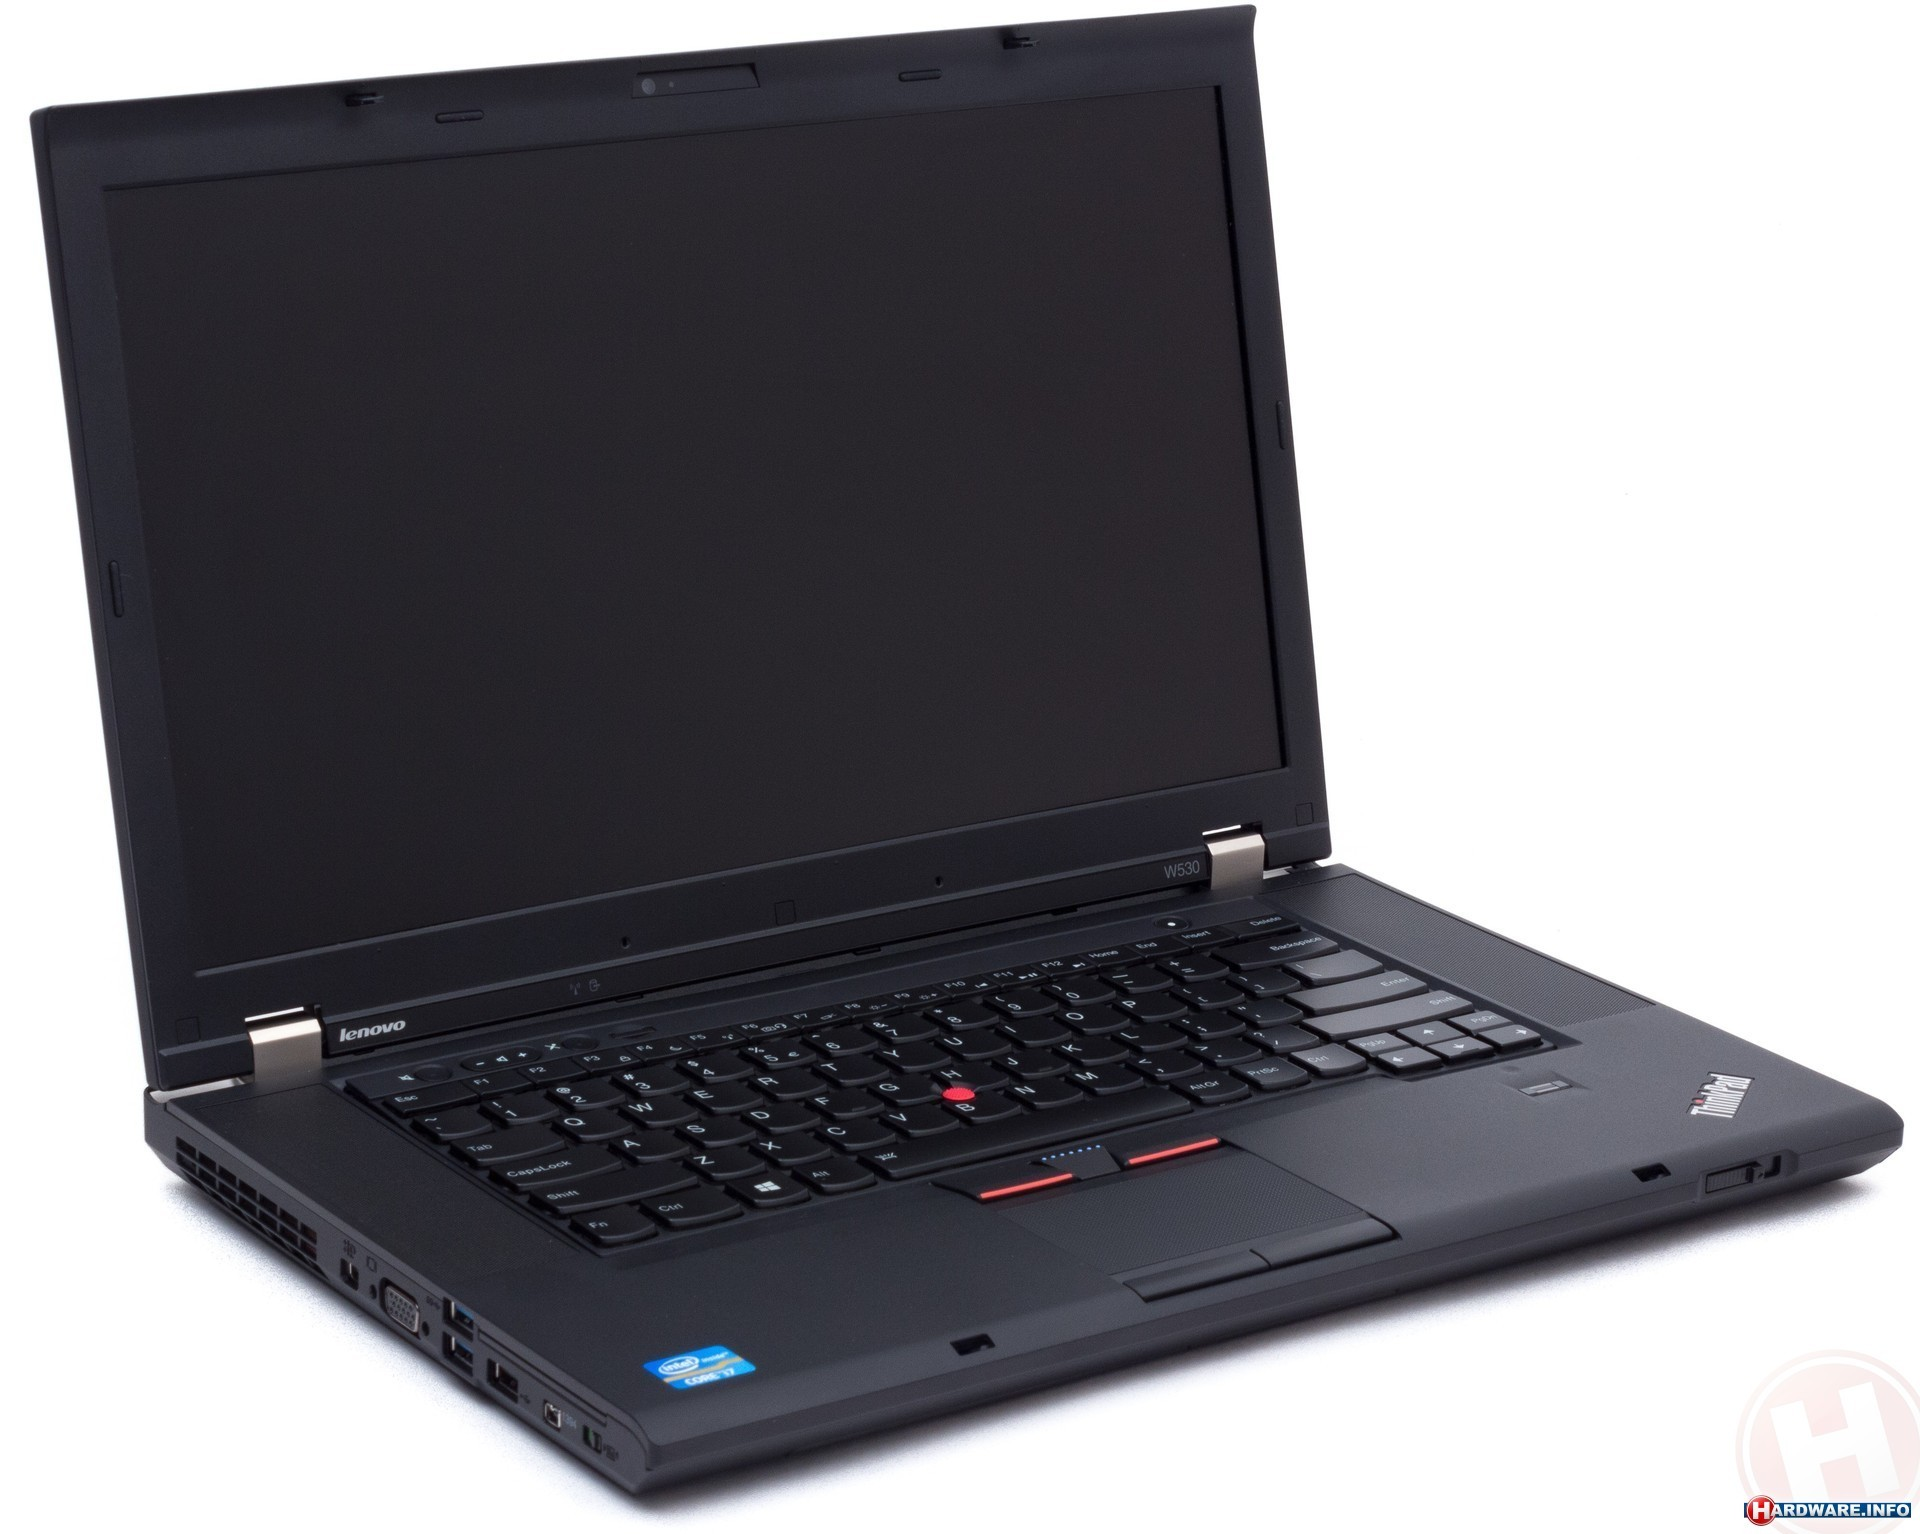 Lenovo ThinkPad W530, Core i7, 16GB, 256GB SSD, Windows 7 Pro